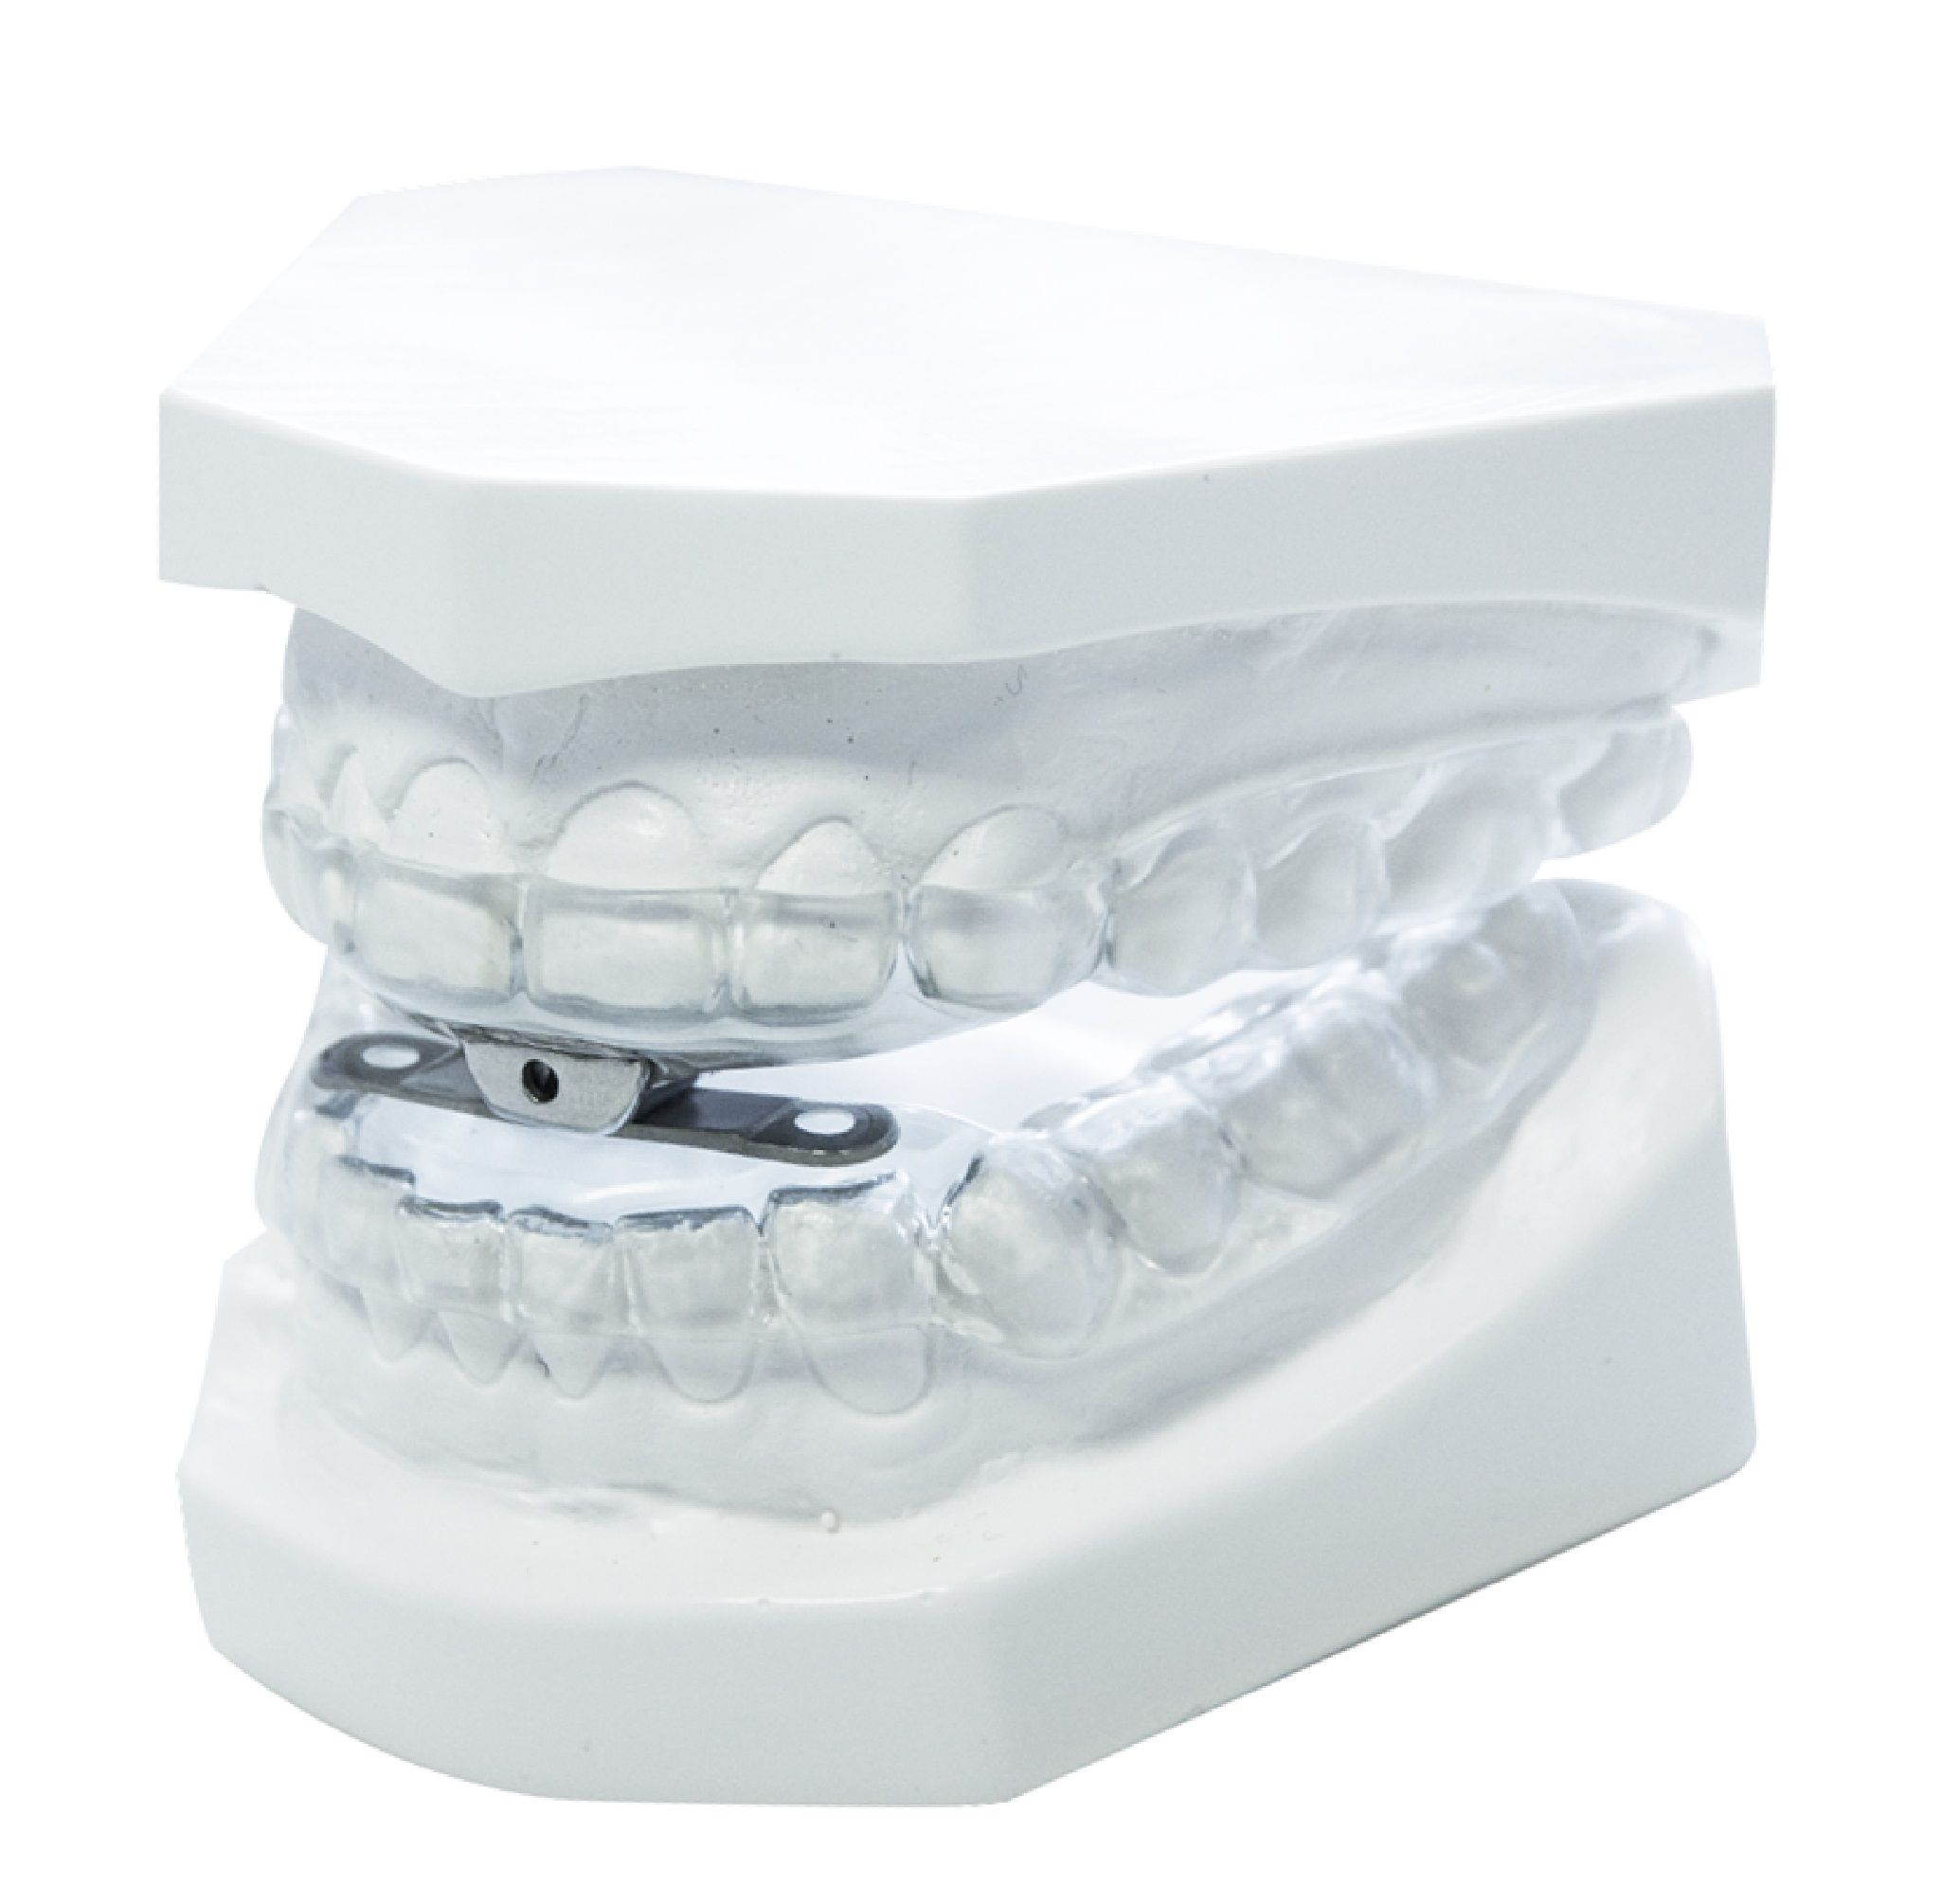 Dental mouthpiece